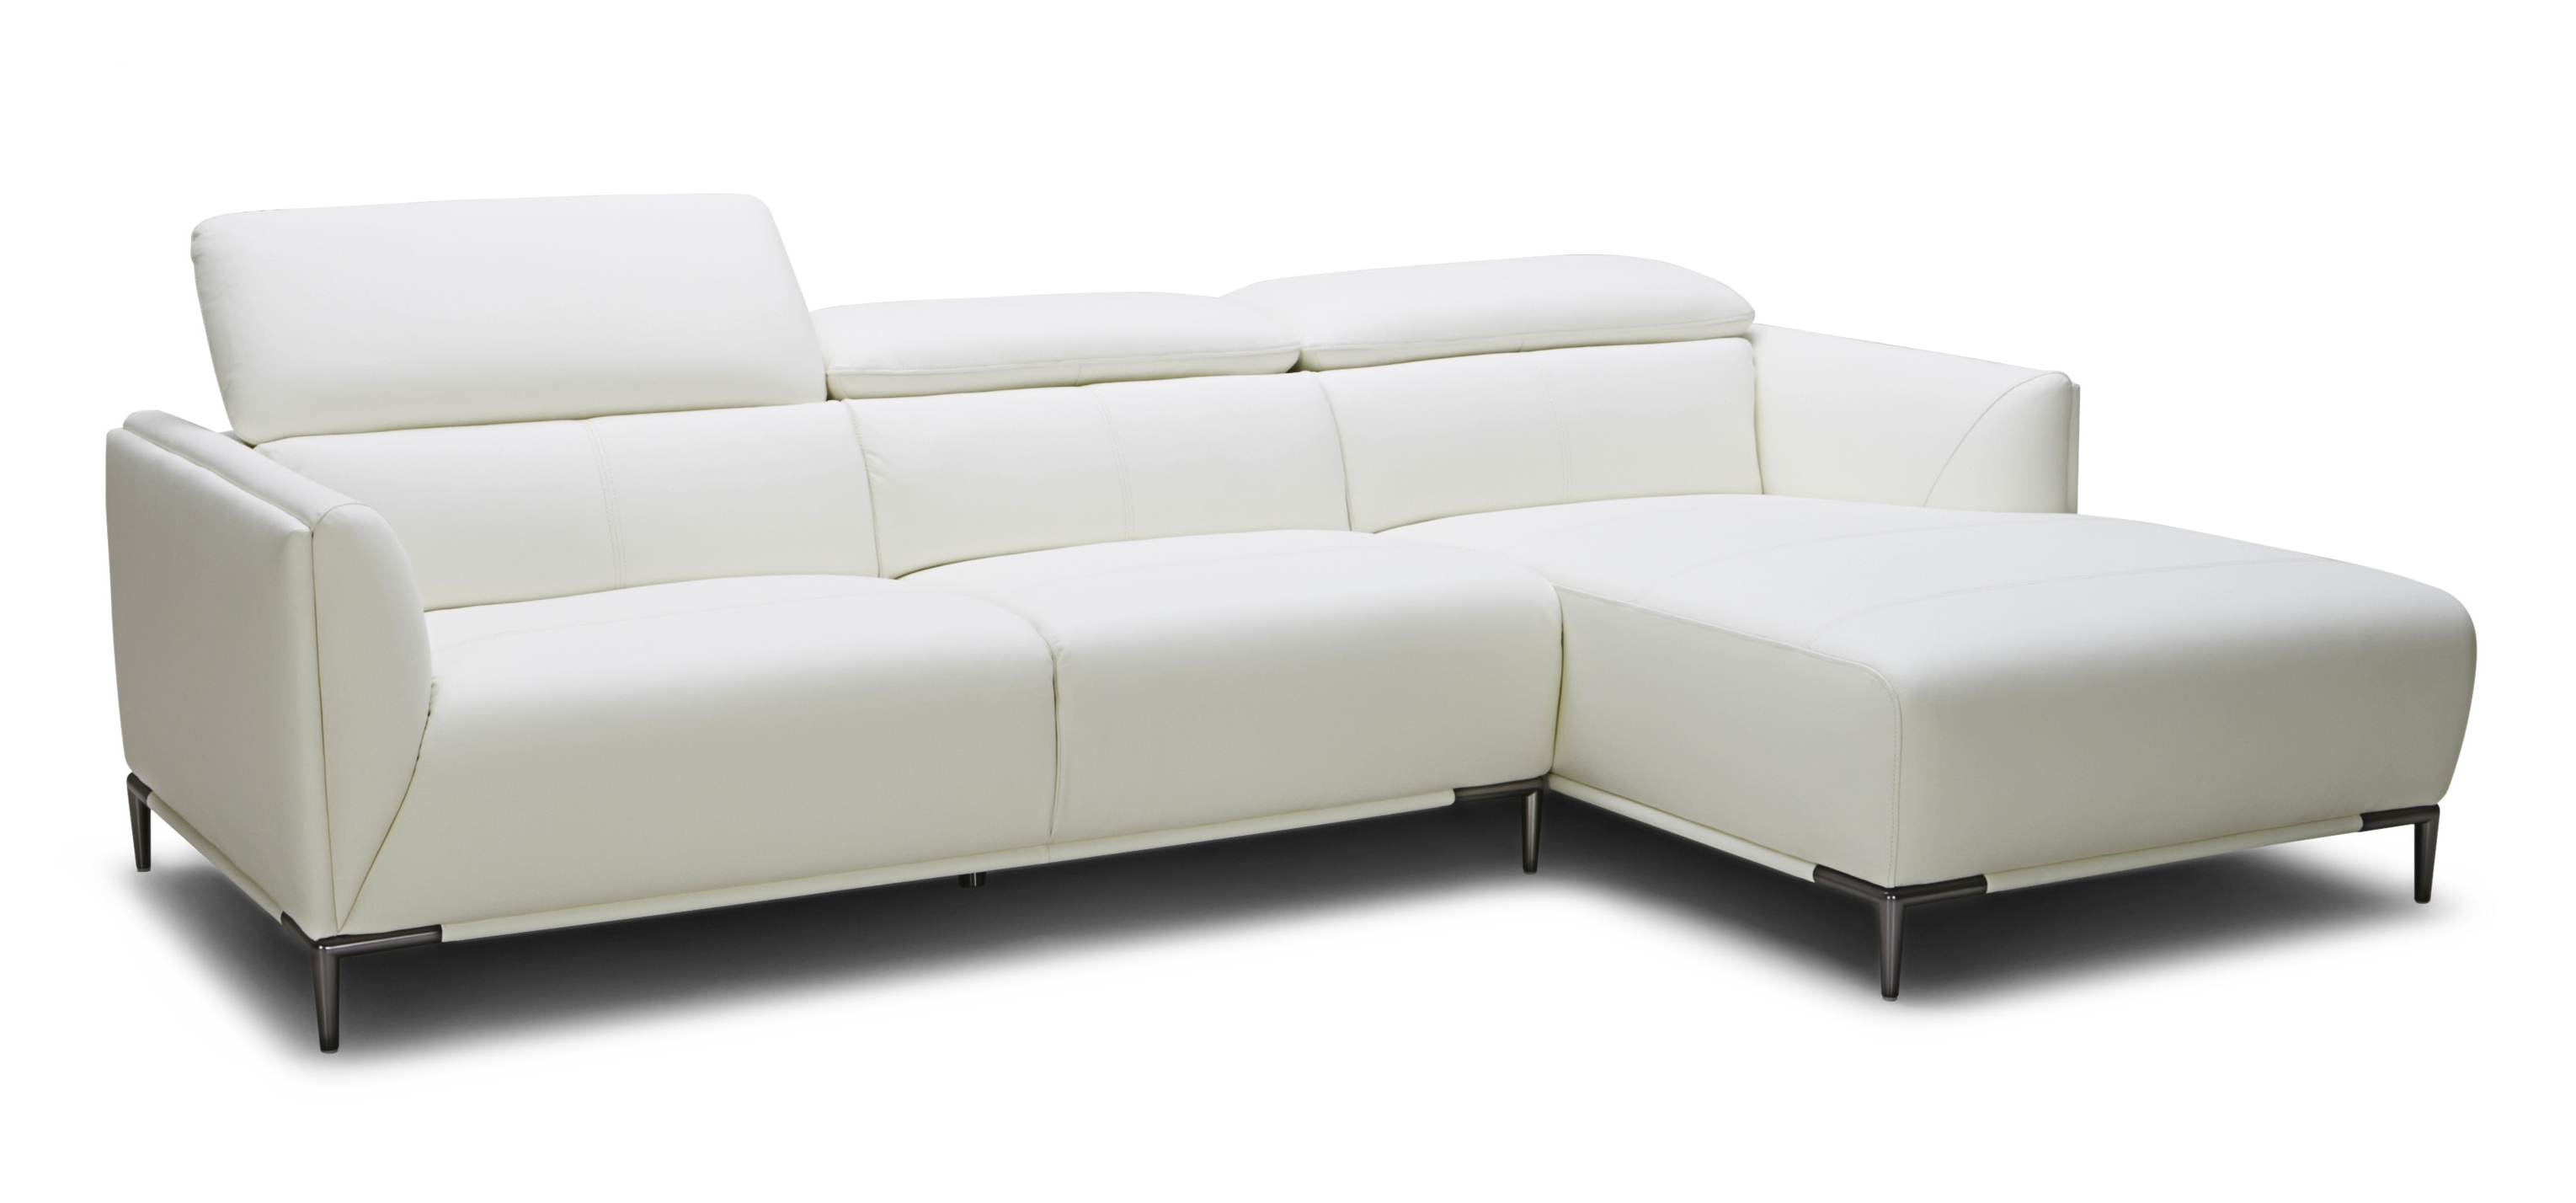 Dezign Furniture Within 2018 Leather Lounge Sofas (View 3 of 20)